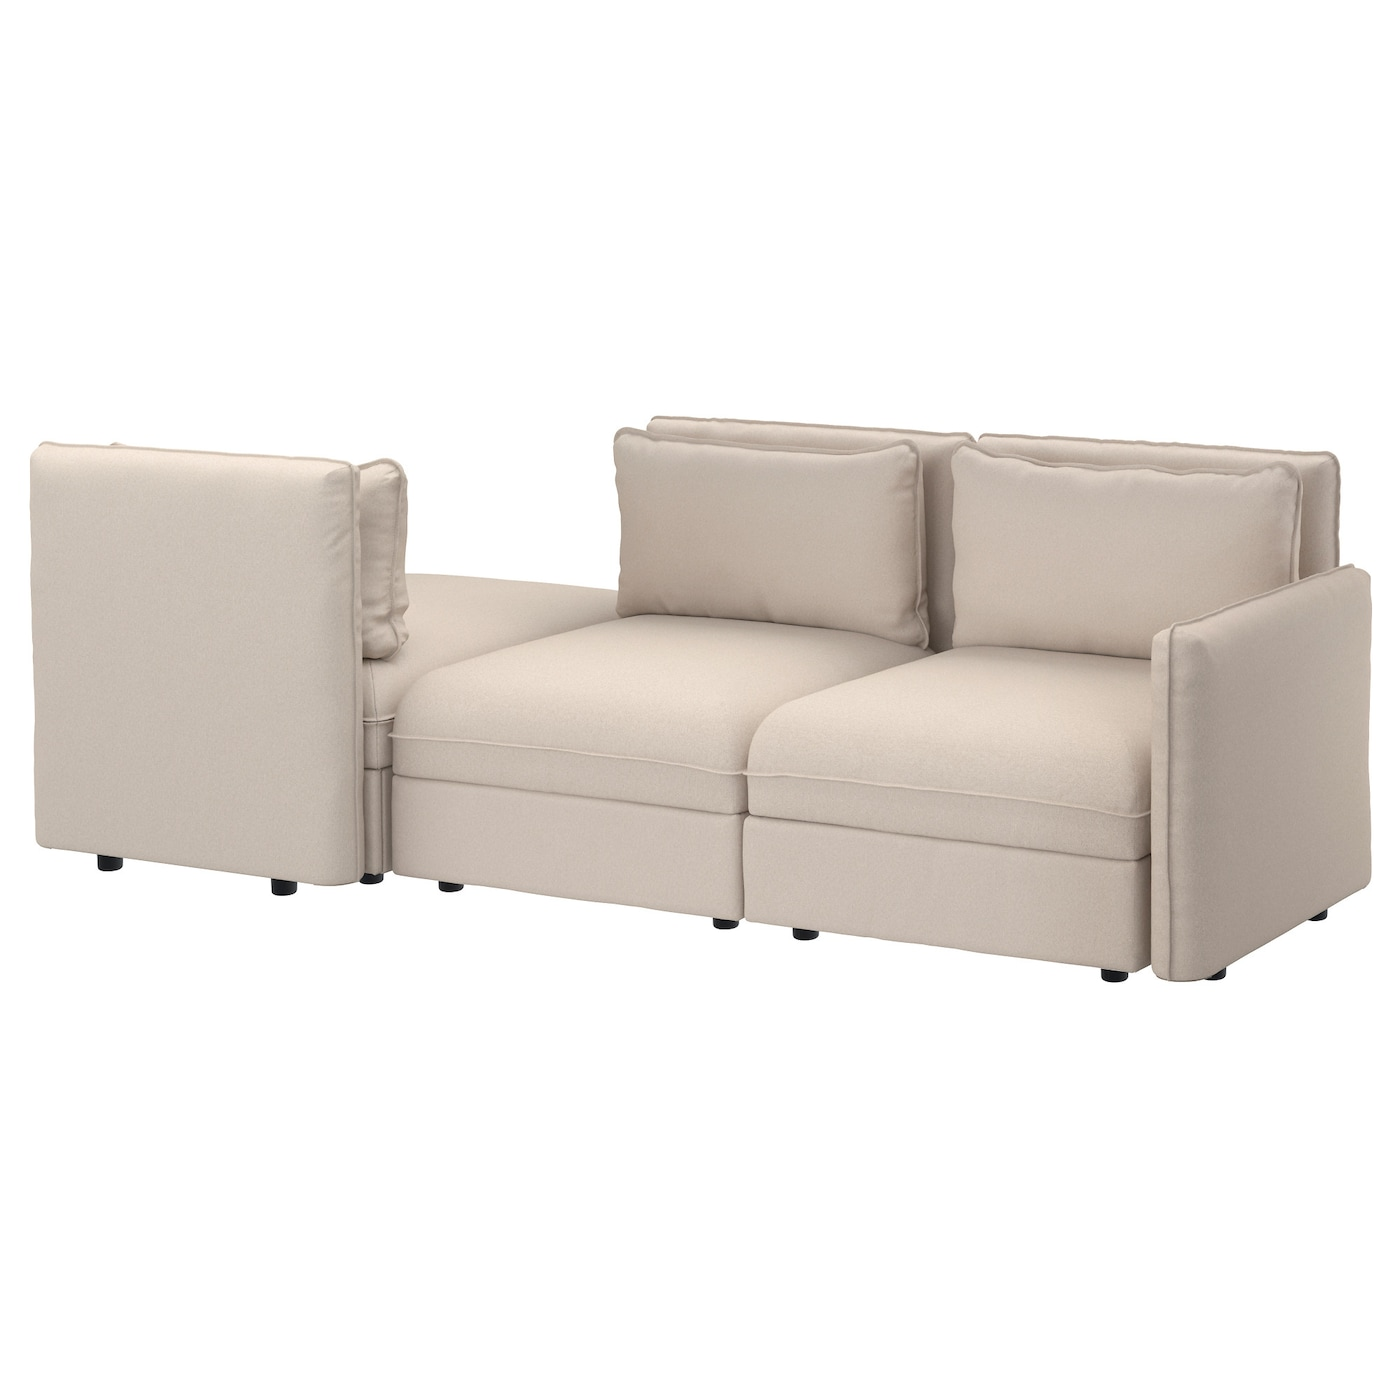 Vallentuna canap 3 places couch orrsta beige ikea for Canape 3 places ikea